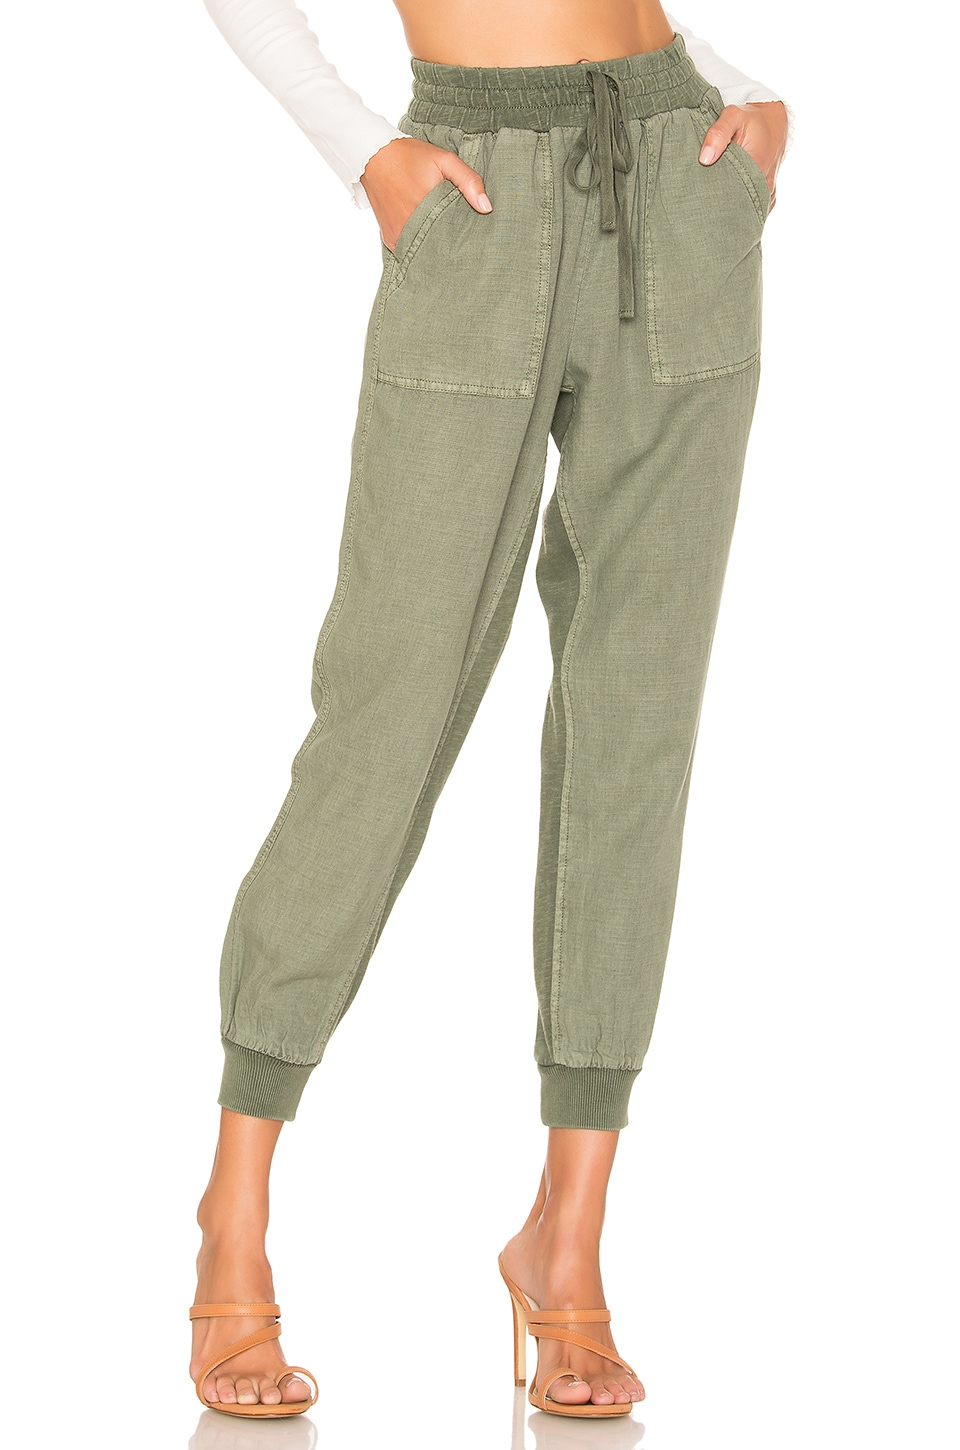 Splendid Boardwalk Jogger in Vintage Spring Green